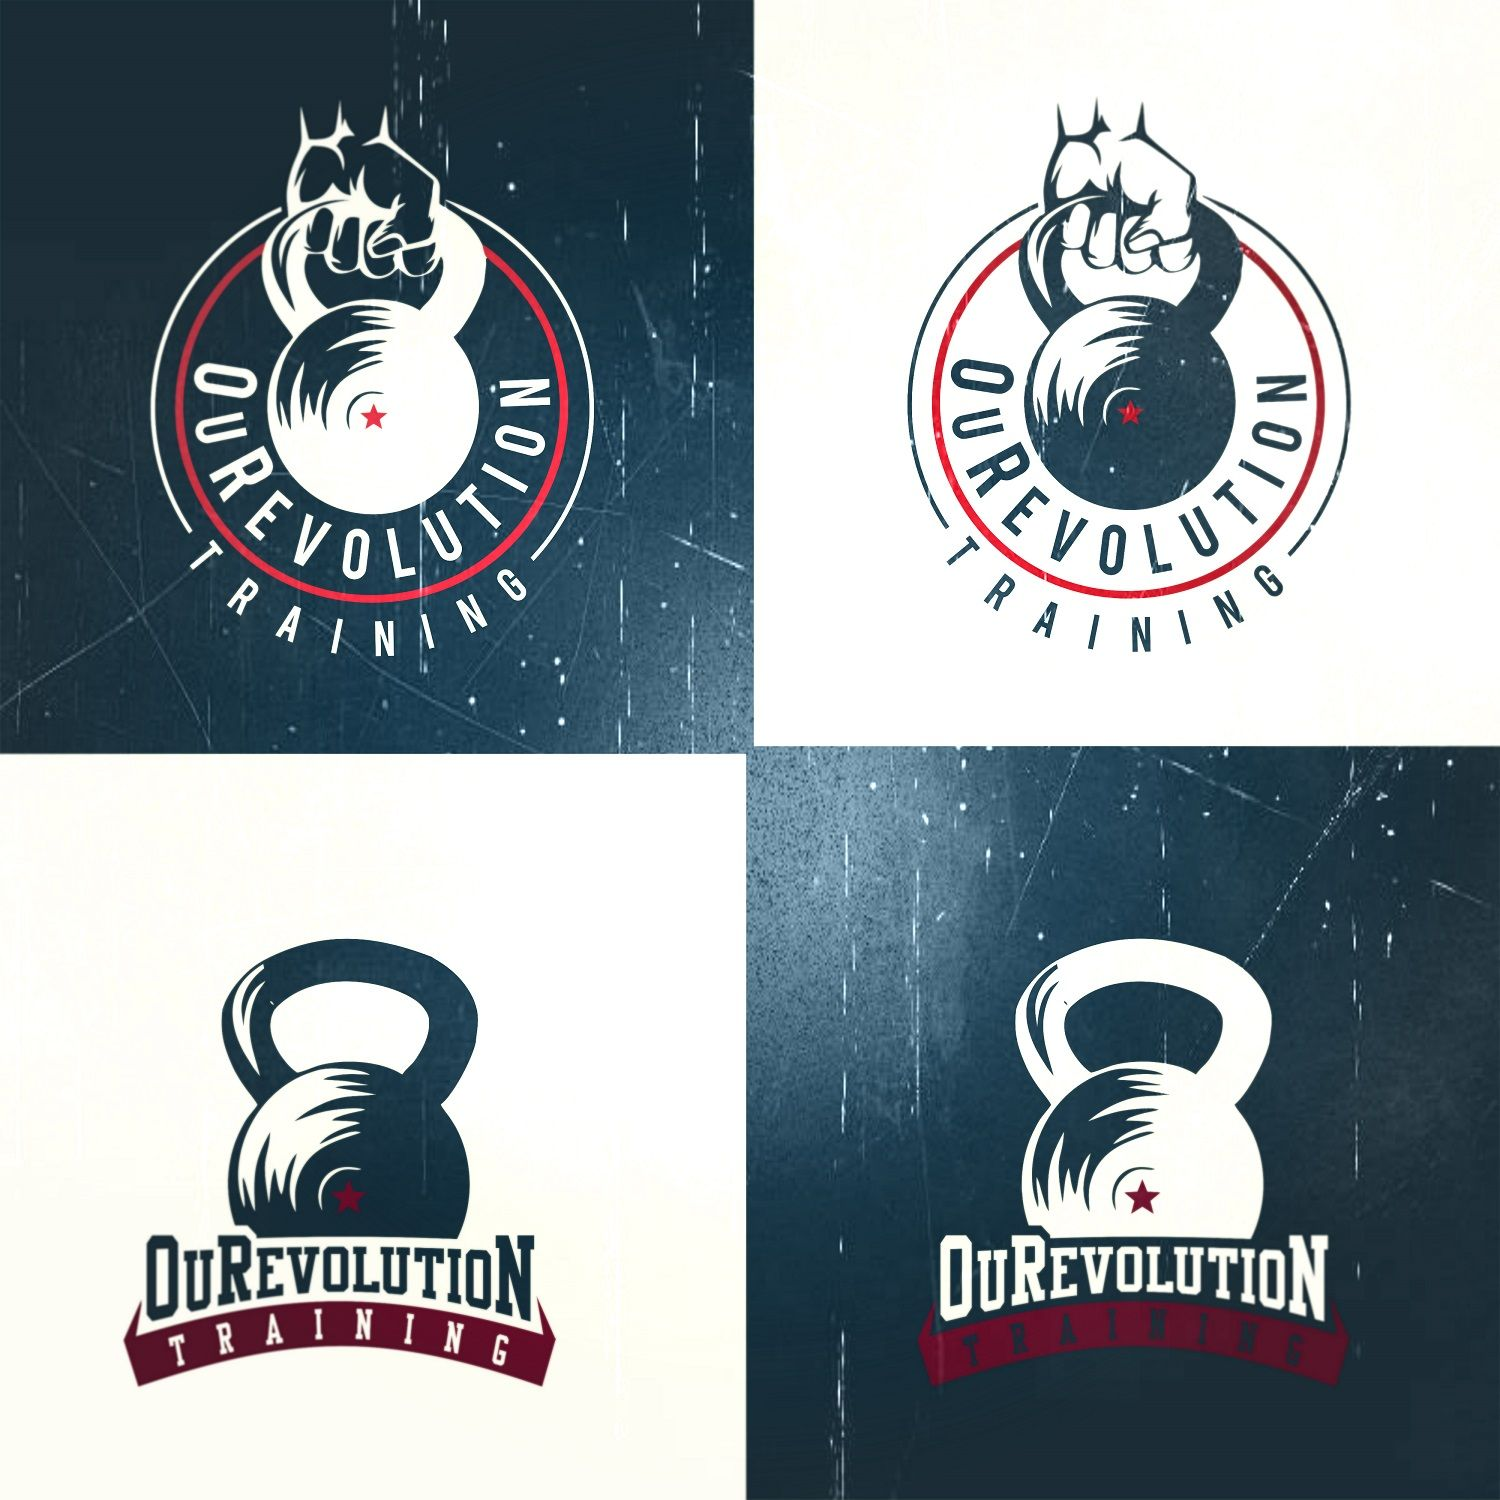 Kettlebell logo fitness cardio workout design by roman free